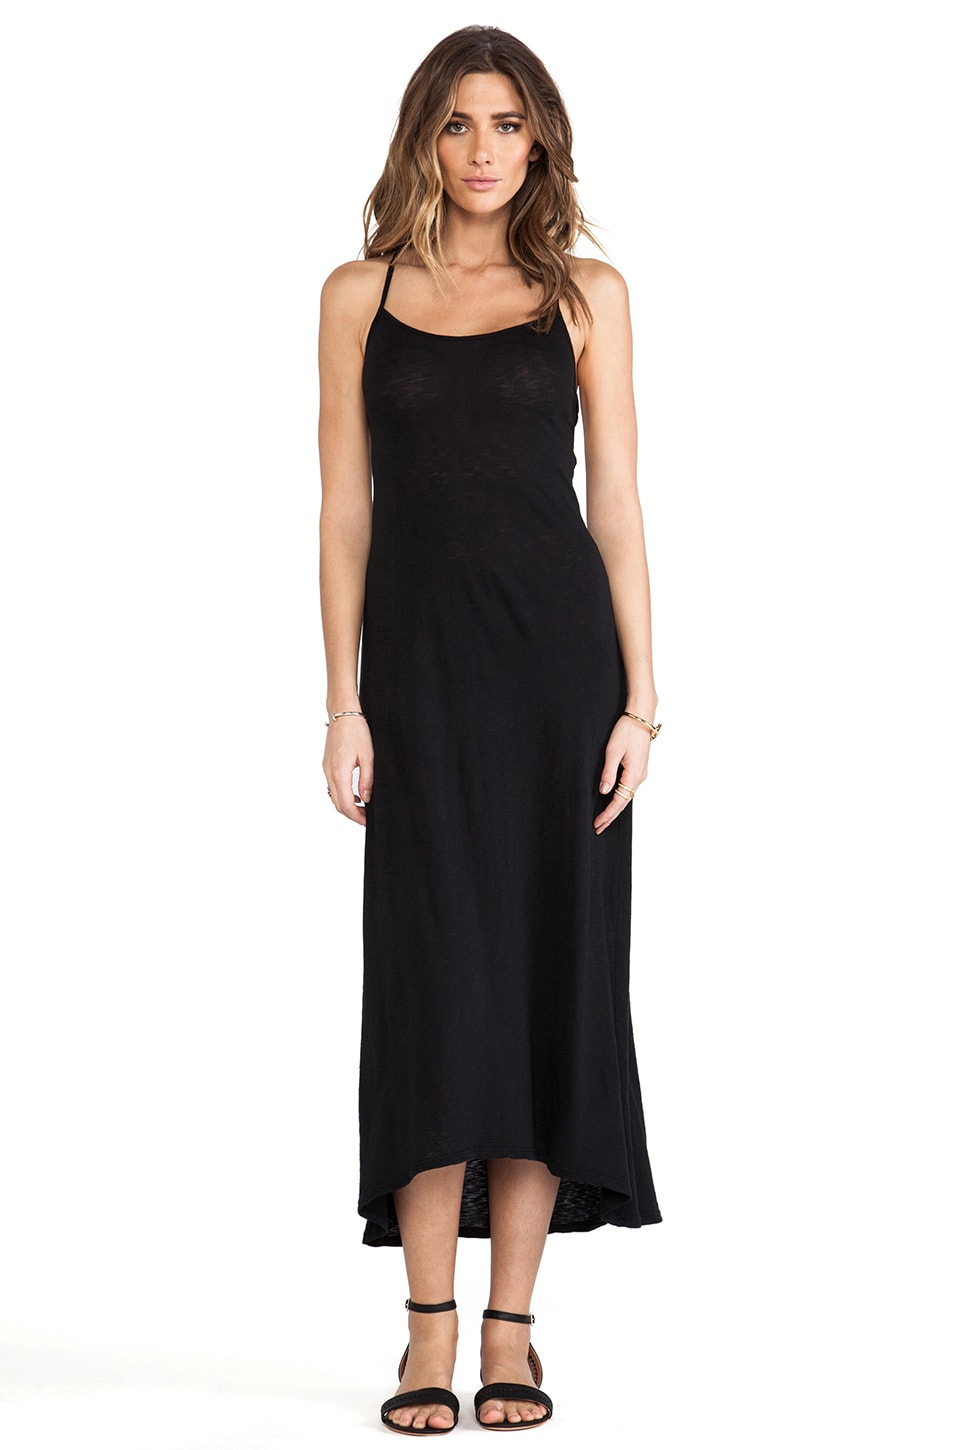 SOLOW Dropped Armhole Maxi Dress in Black